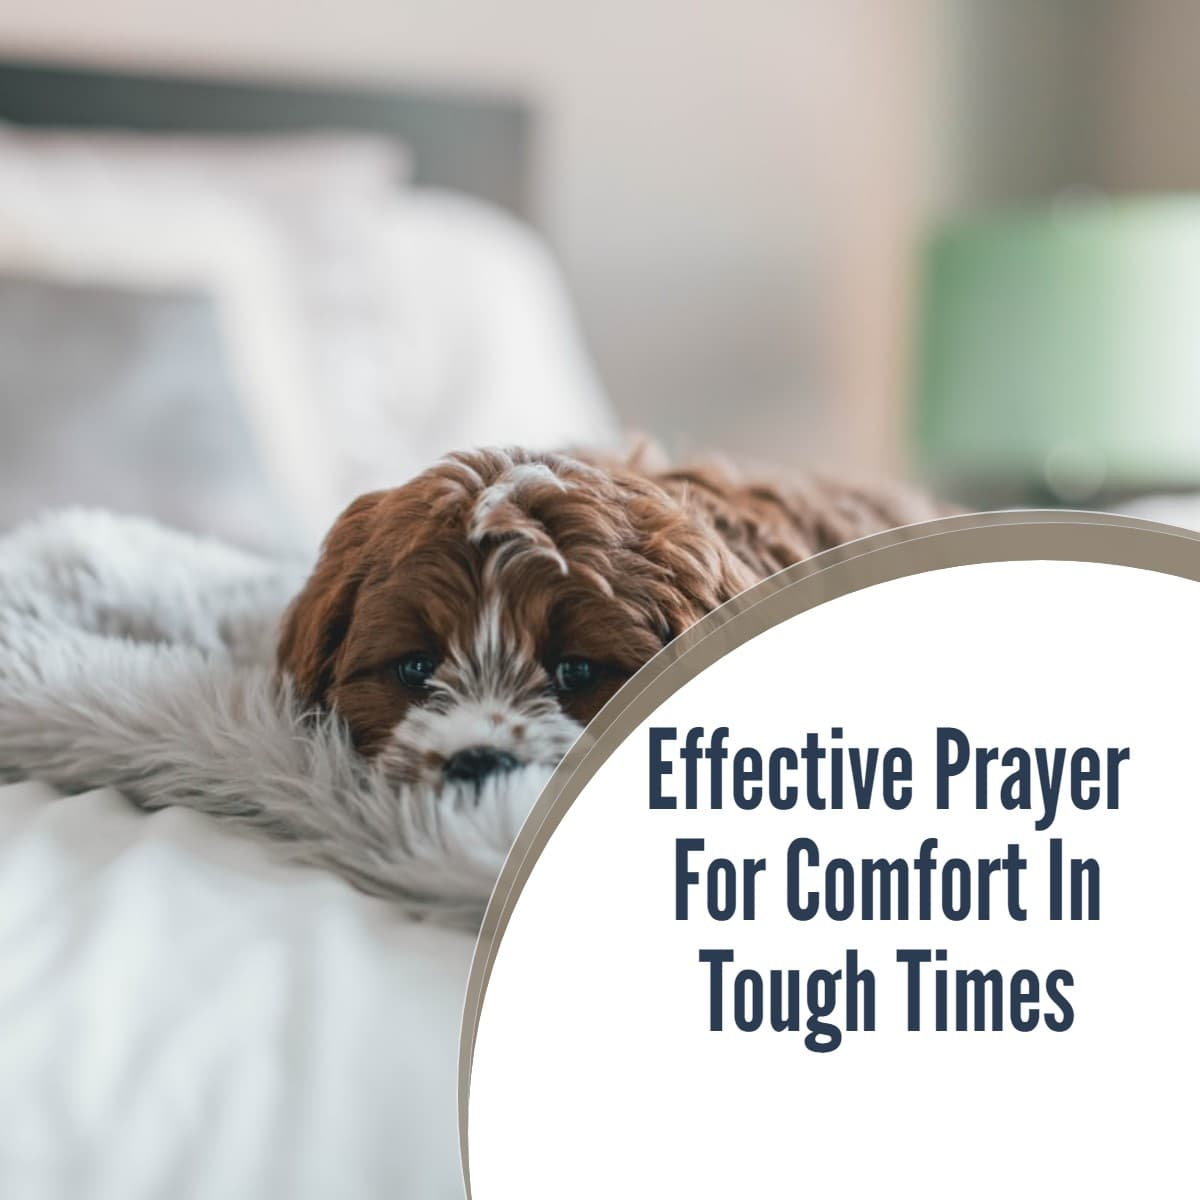 Effective Prayer For Comfort in tough times